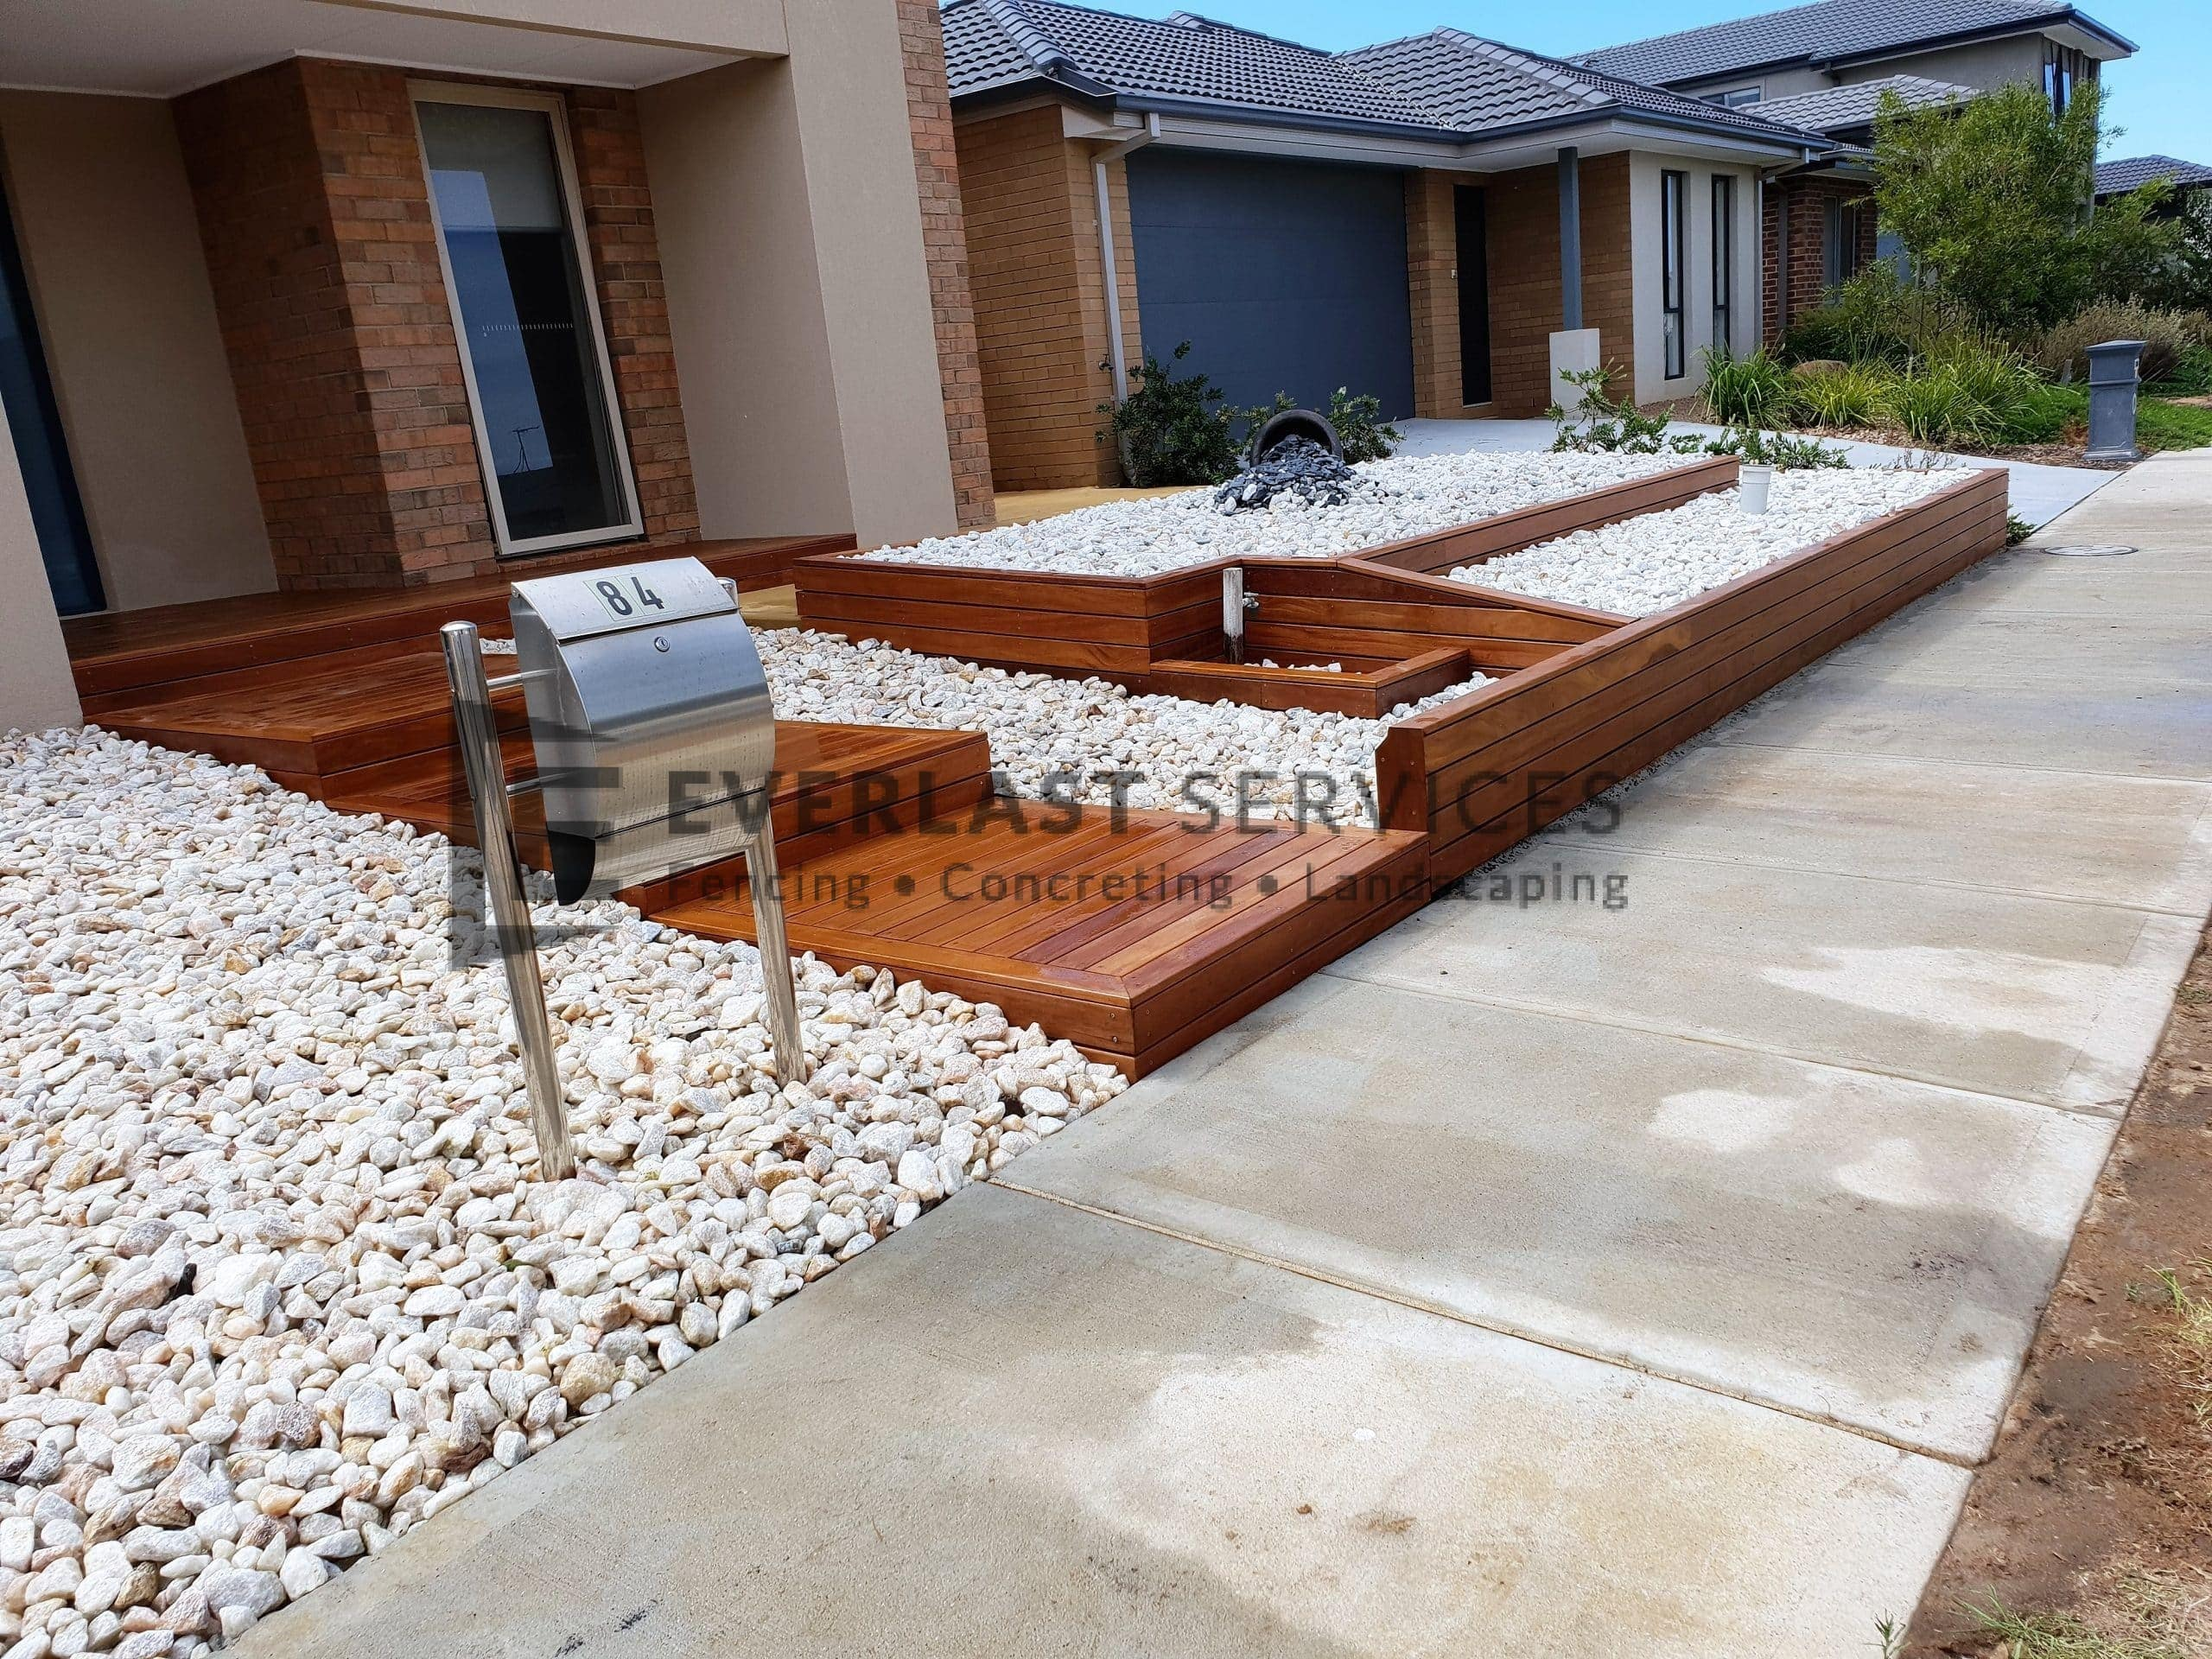 L228 - Decking Steps with Decking Retaining Wall